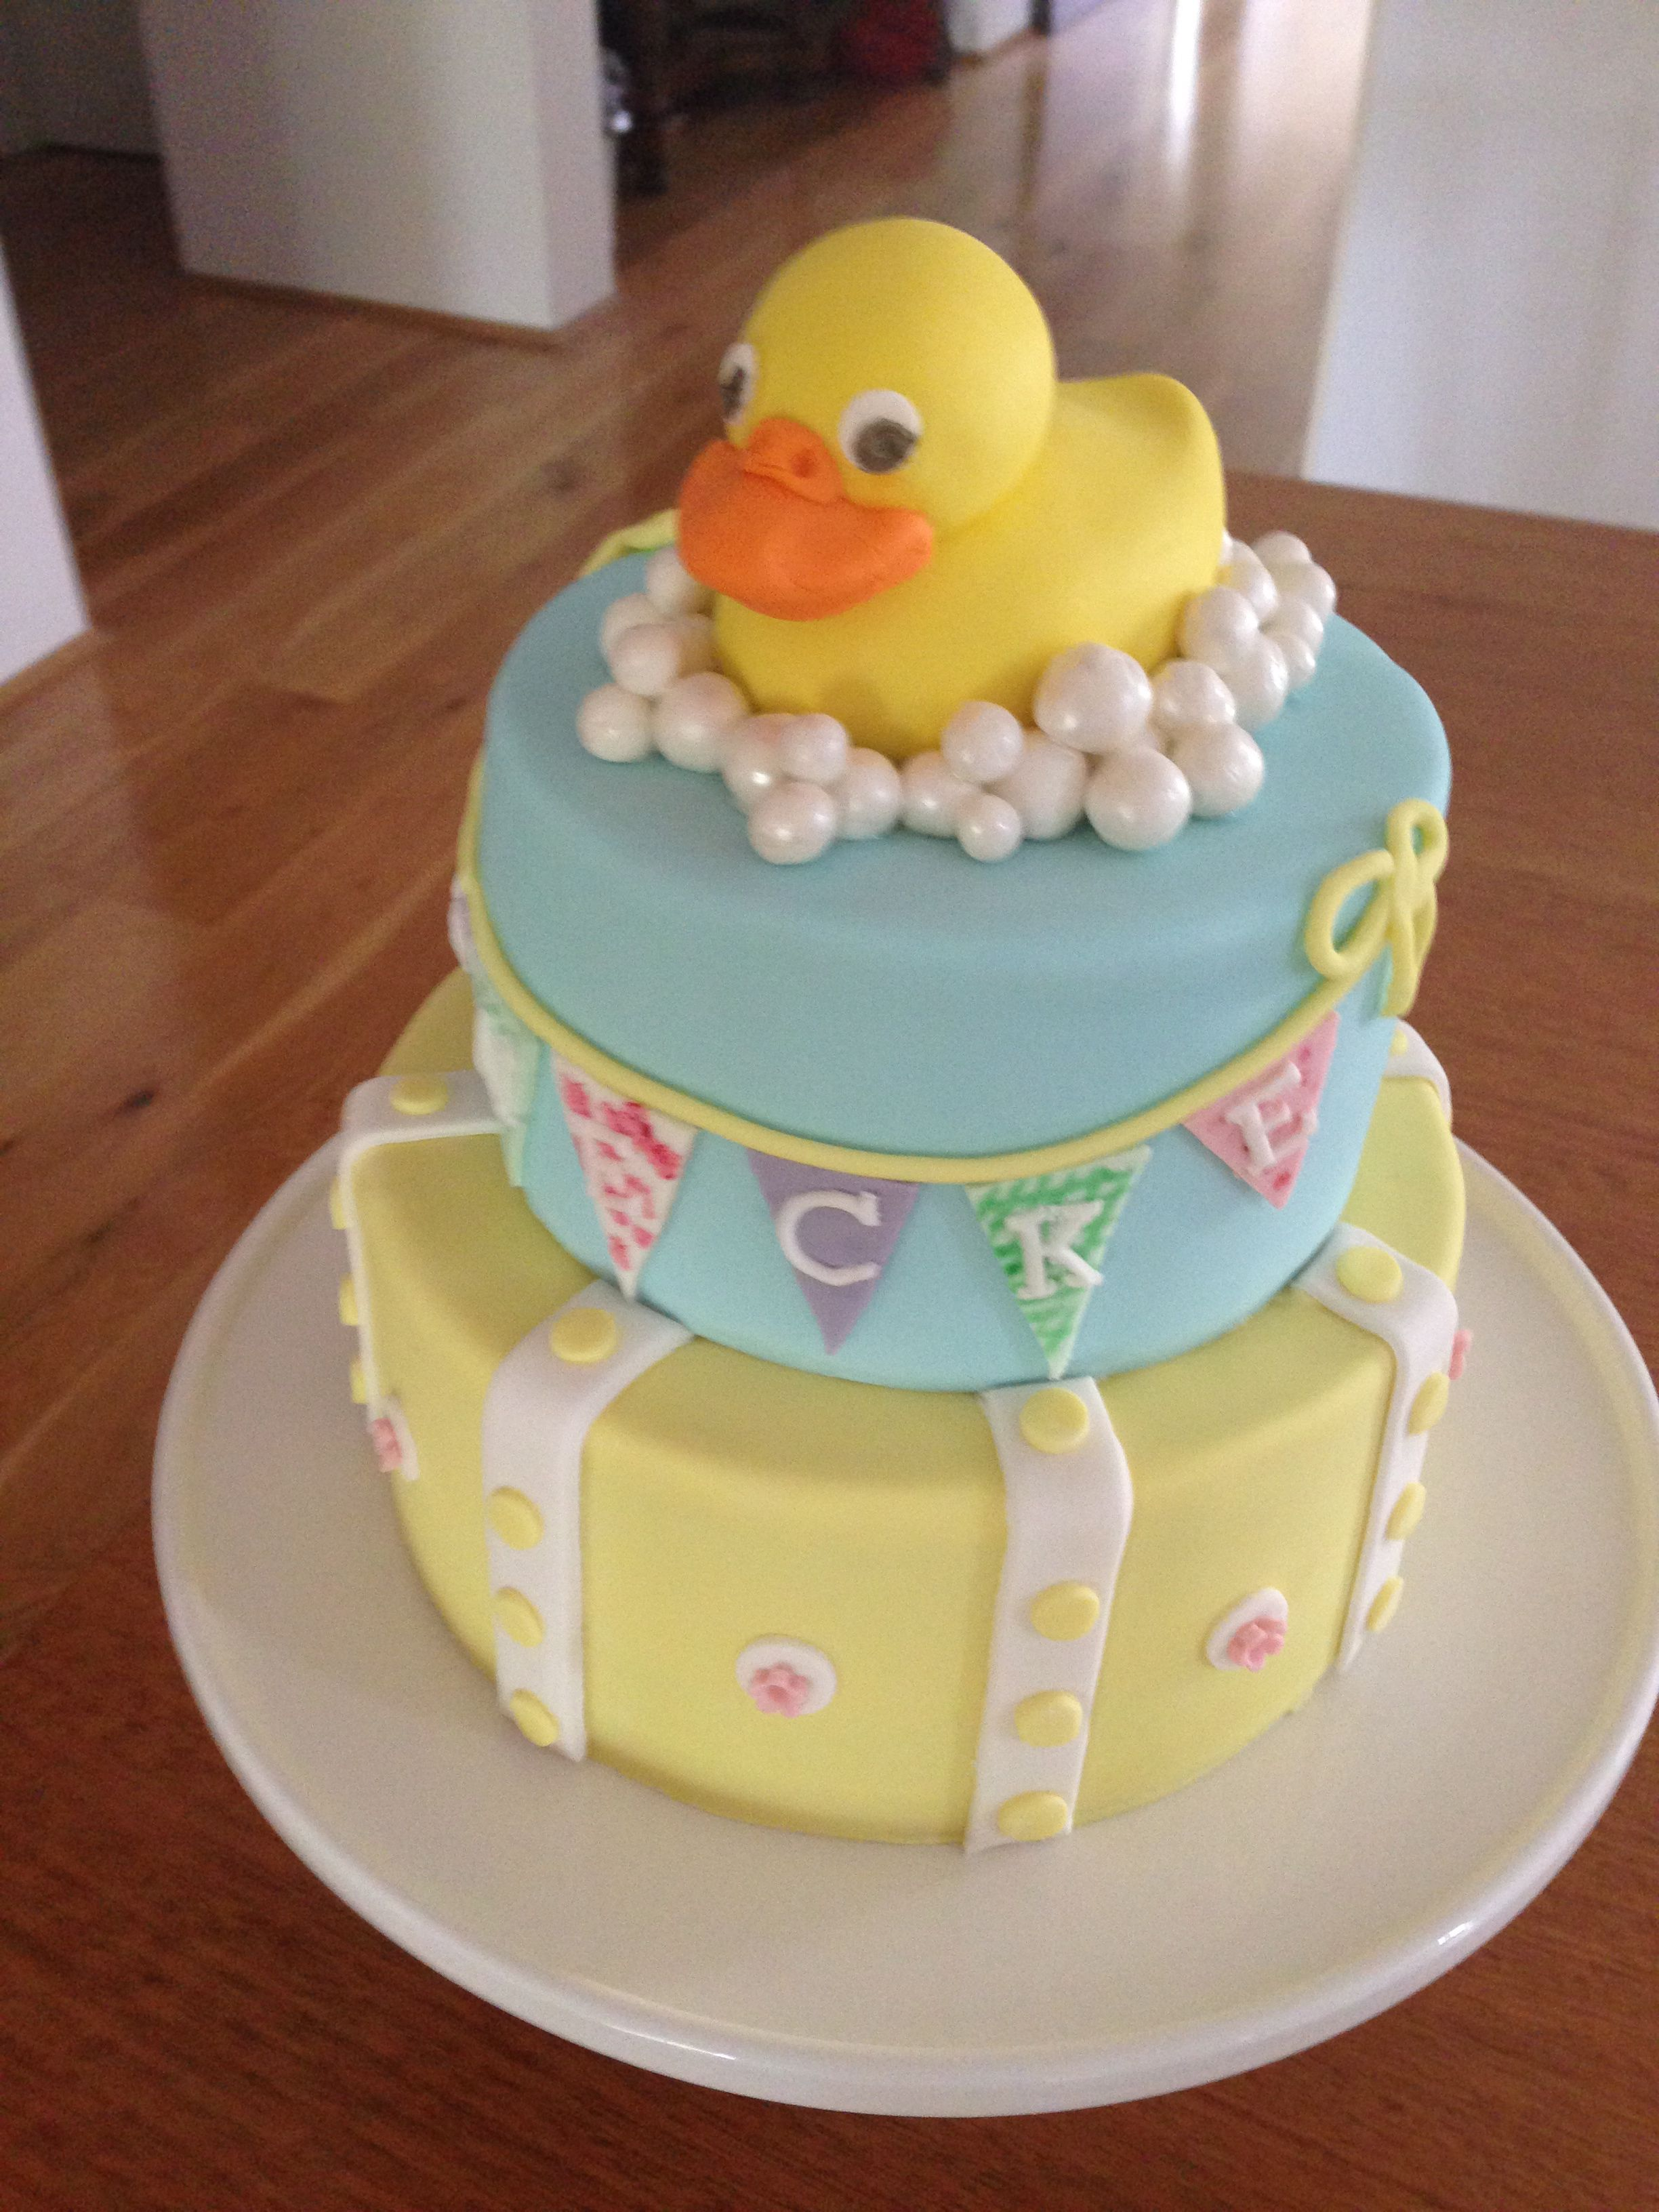 Rubber Ducky First Birthday Cake Marita Makes Cakes Pinterest